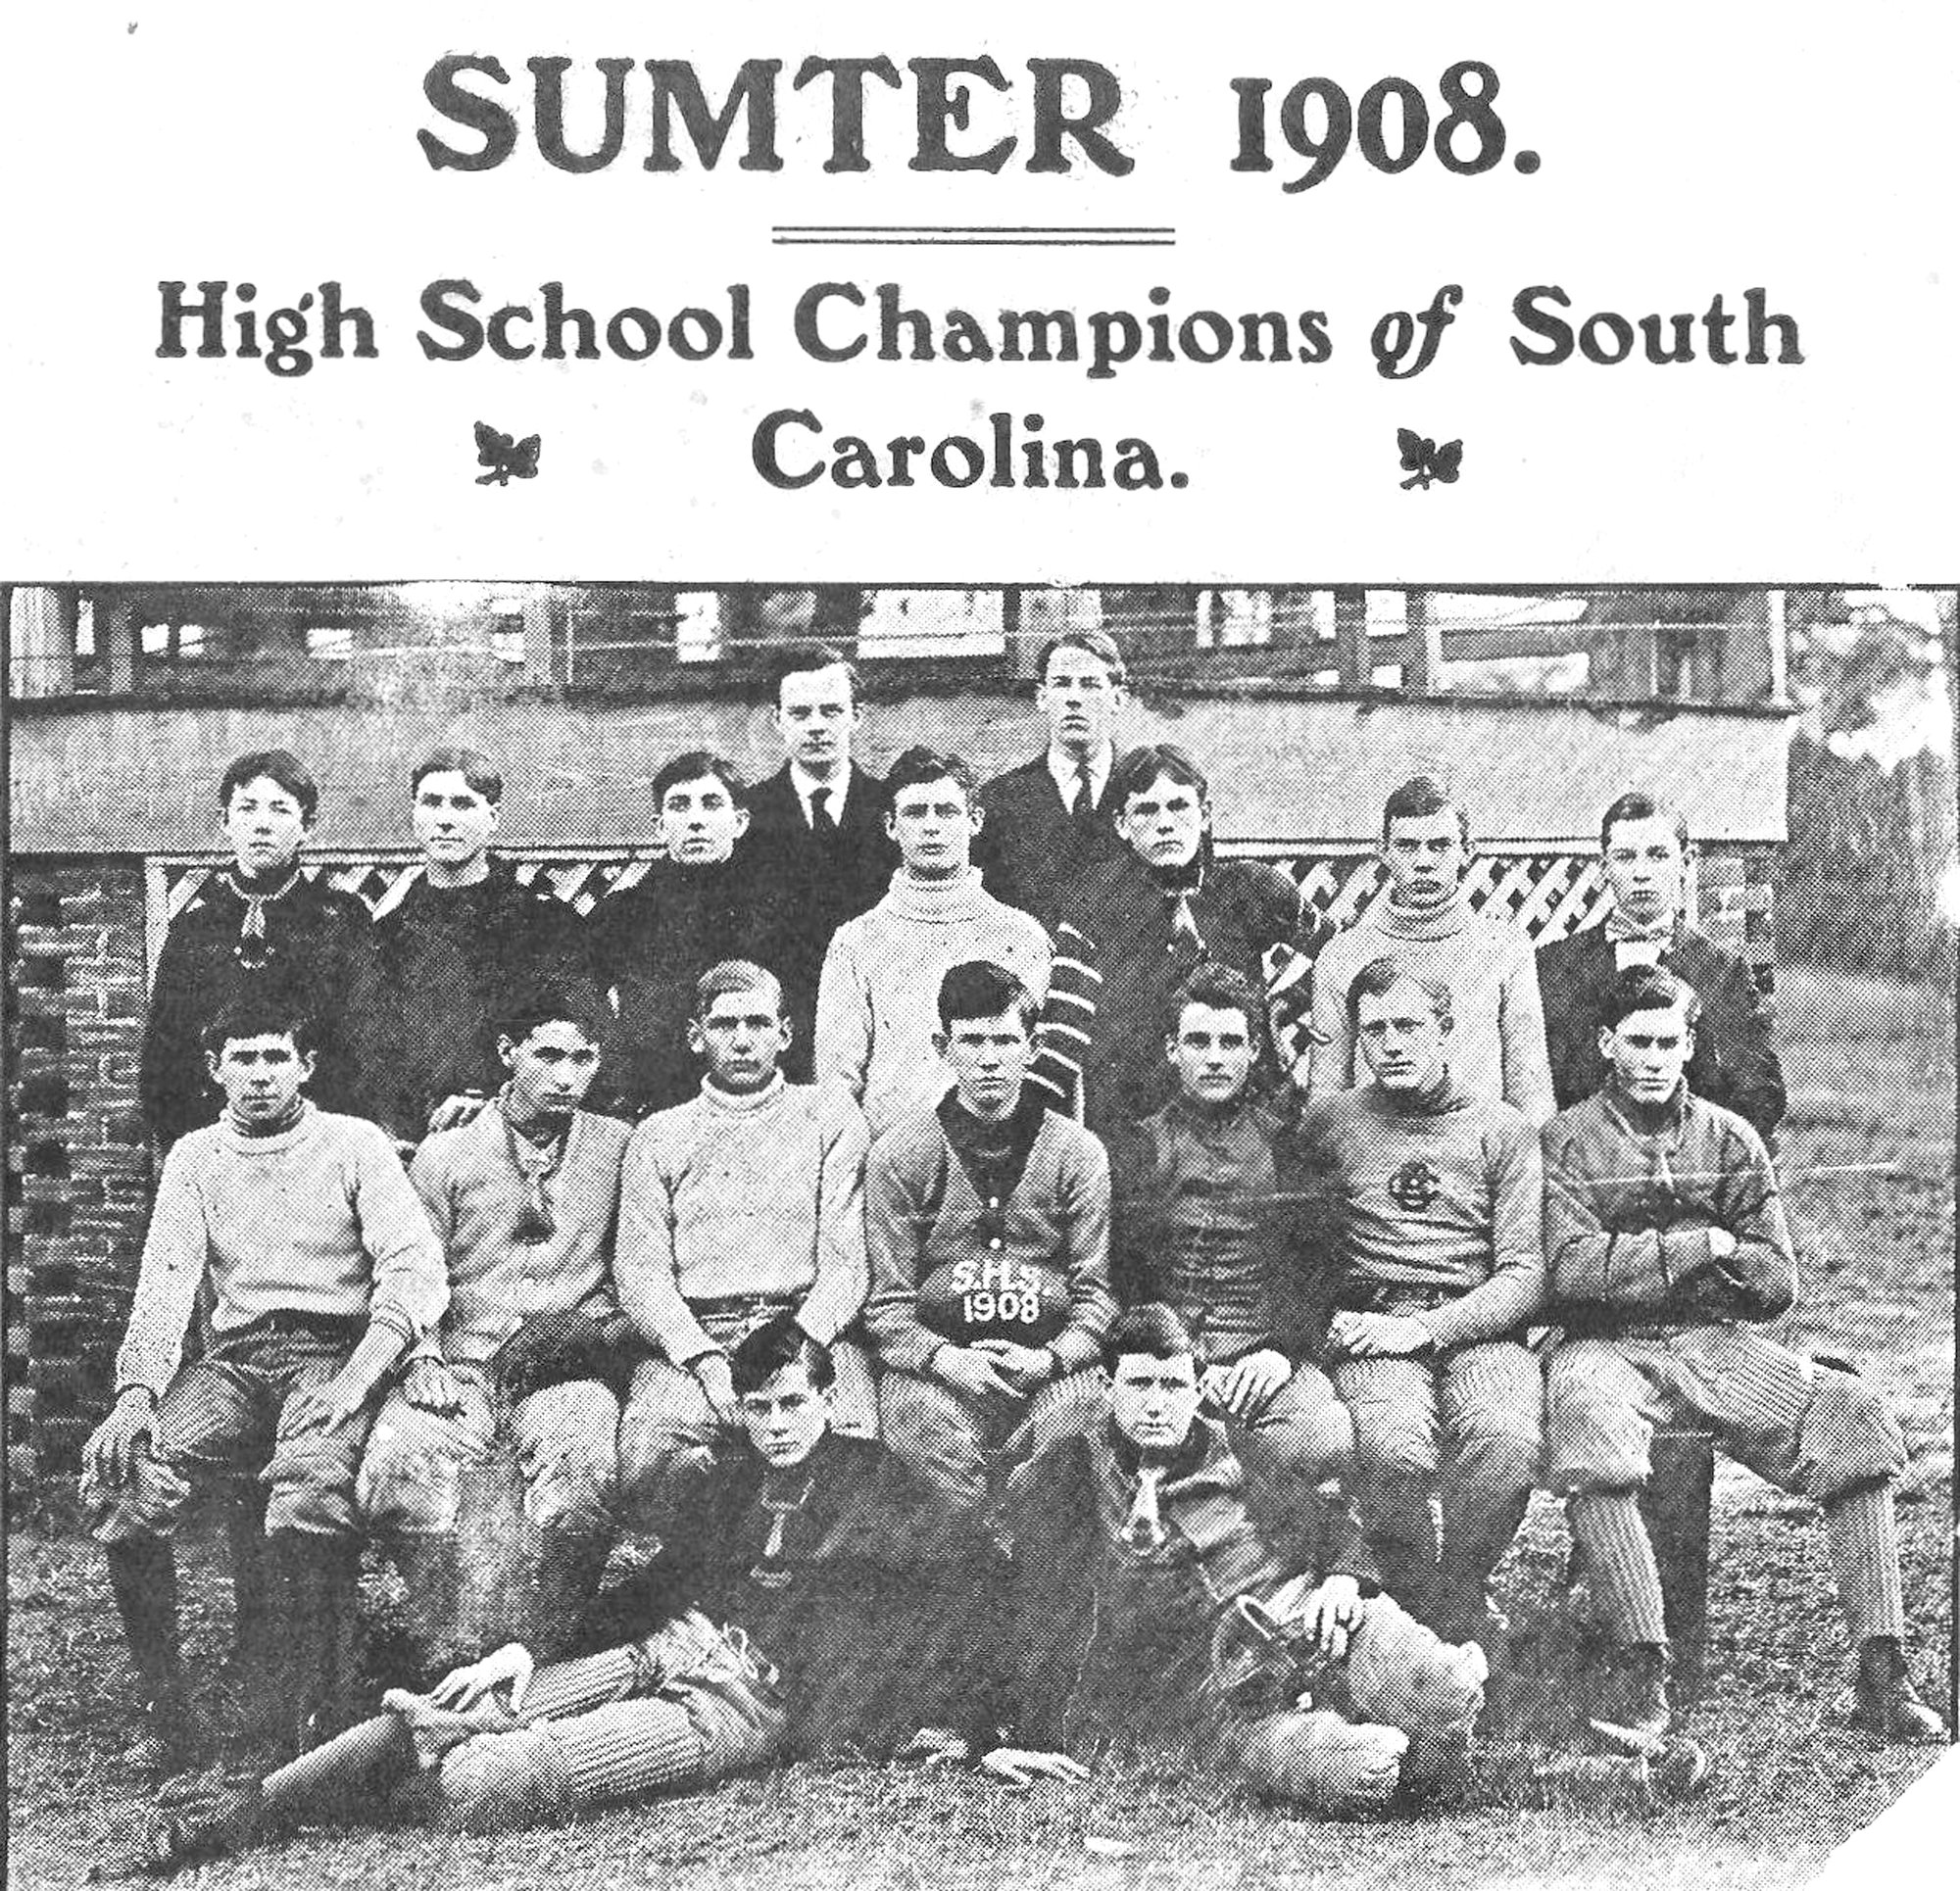 These teammeates defeated all comers during the 1908 season with a record of not being scored on. From left are (on the ground) Smith, left end; and N. Dick, left halfback and left tackle; (first row) Morris, end; Davis, fullback; F. Dick, sub guard; Shaw, captain, left halfback; Duffie, quarterback; Collins, center; Brown, right tackle; (second row) Walsh, right end; Jones, left tackle; Owens, left guard; Green, right halfback; Williford, right guard; Hinson, sub end; Rhame, manager. (back row)